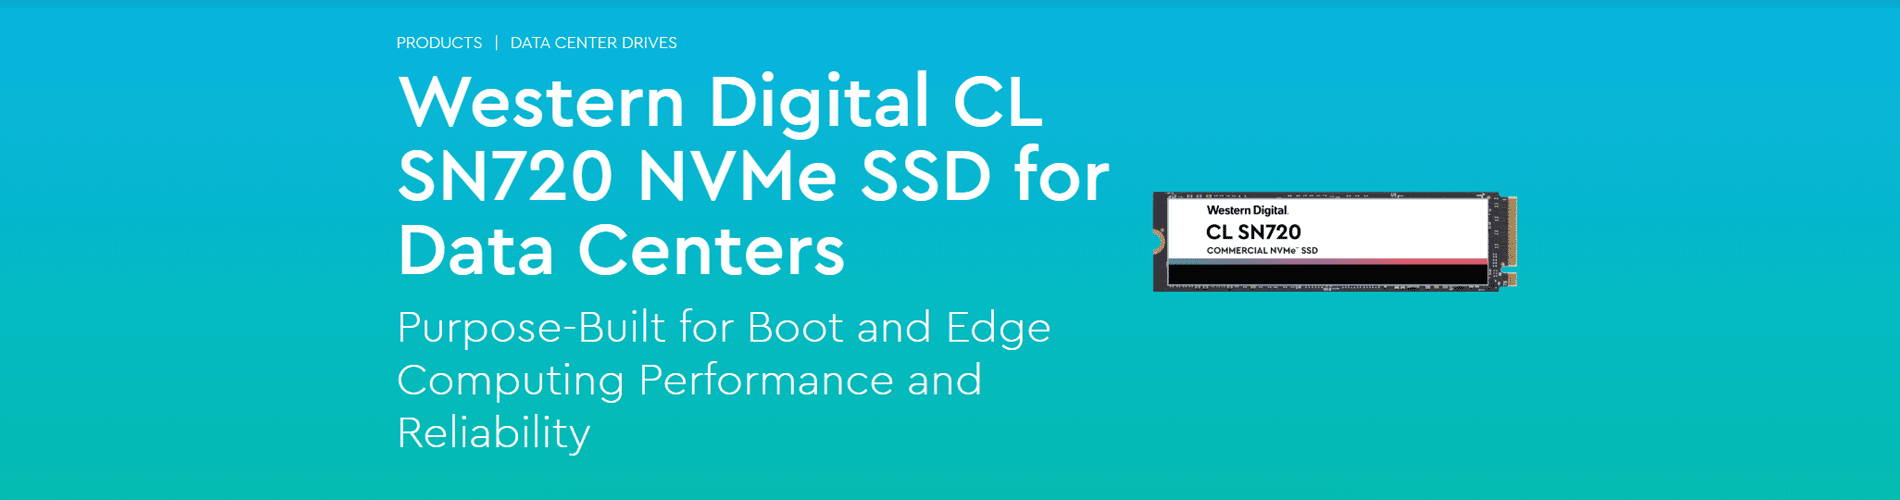 Western Digital CL SN720 NVMe SSD for Data Centers